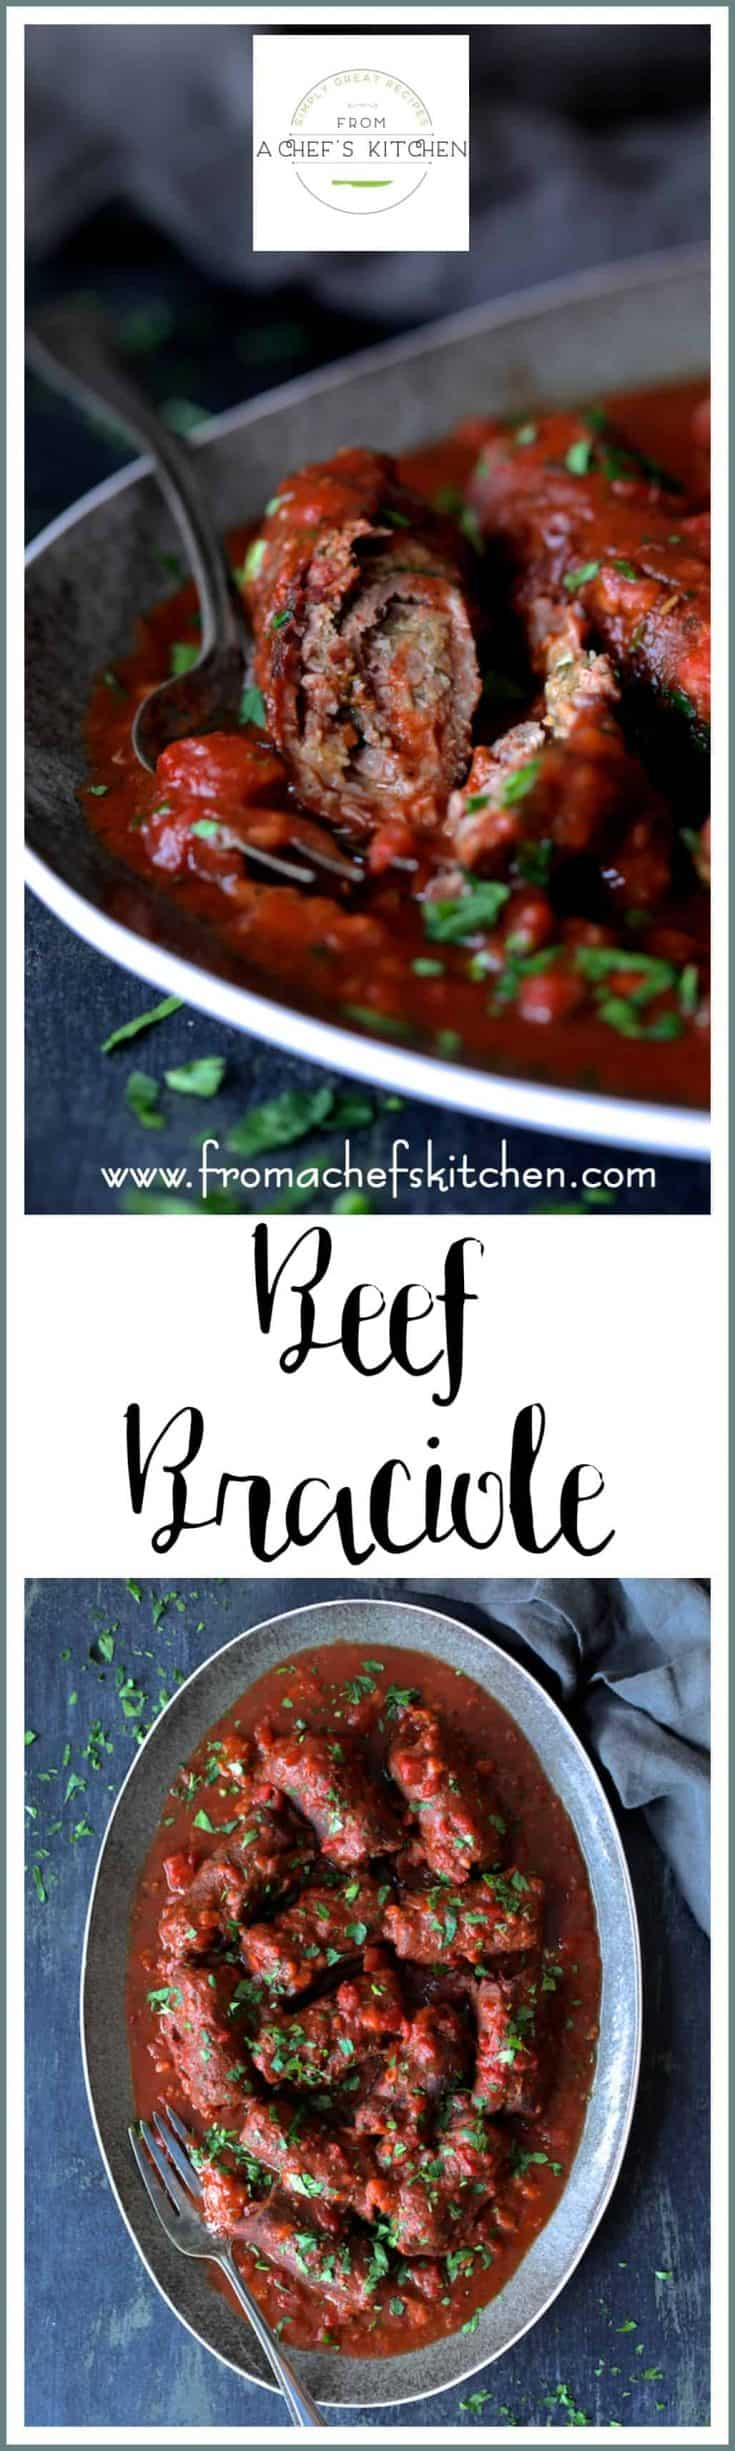 Beef Braciole is a hearty, slowly-simmered wine-infused homestyle southern Italian dish that's perfect for a wintry night.  #beef #beefbraciole #braciole #Italian